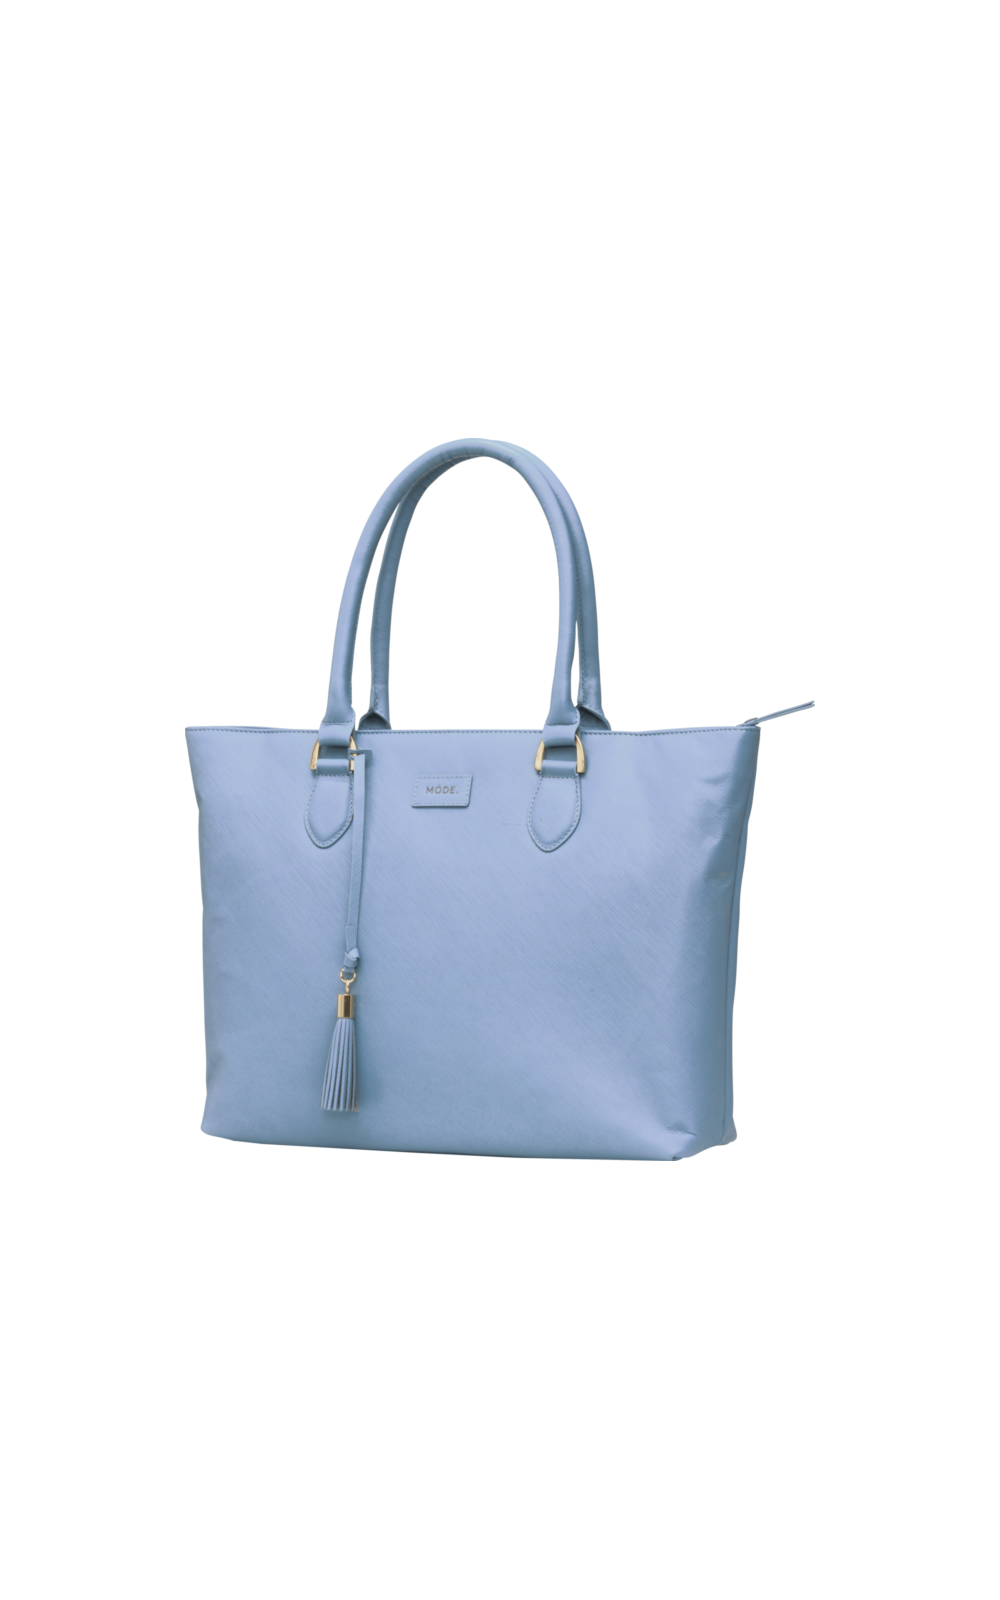 dbramante1928 Tote Forever Blue